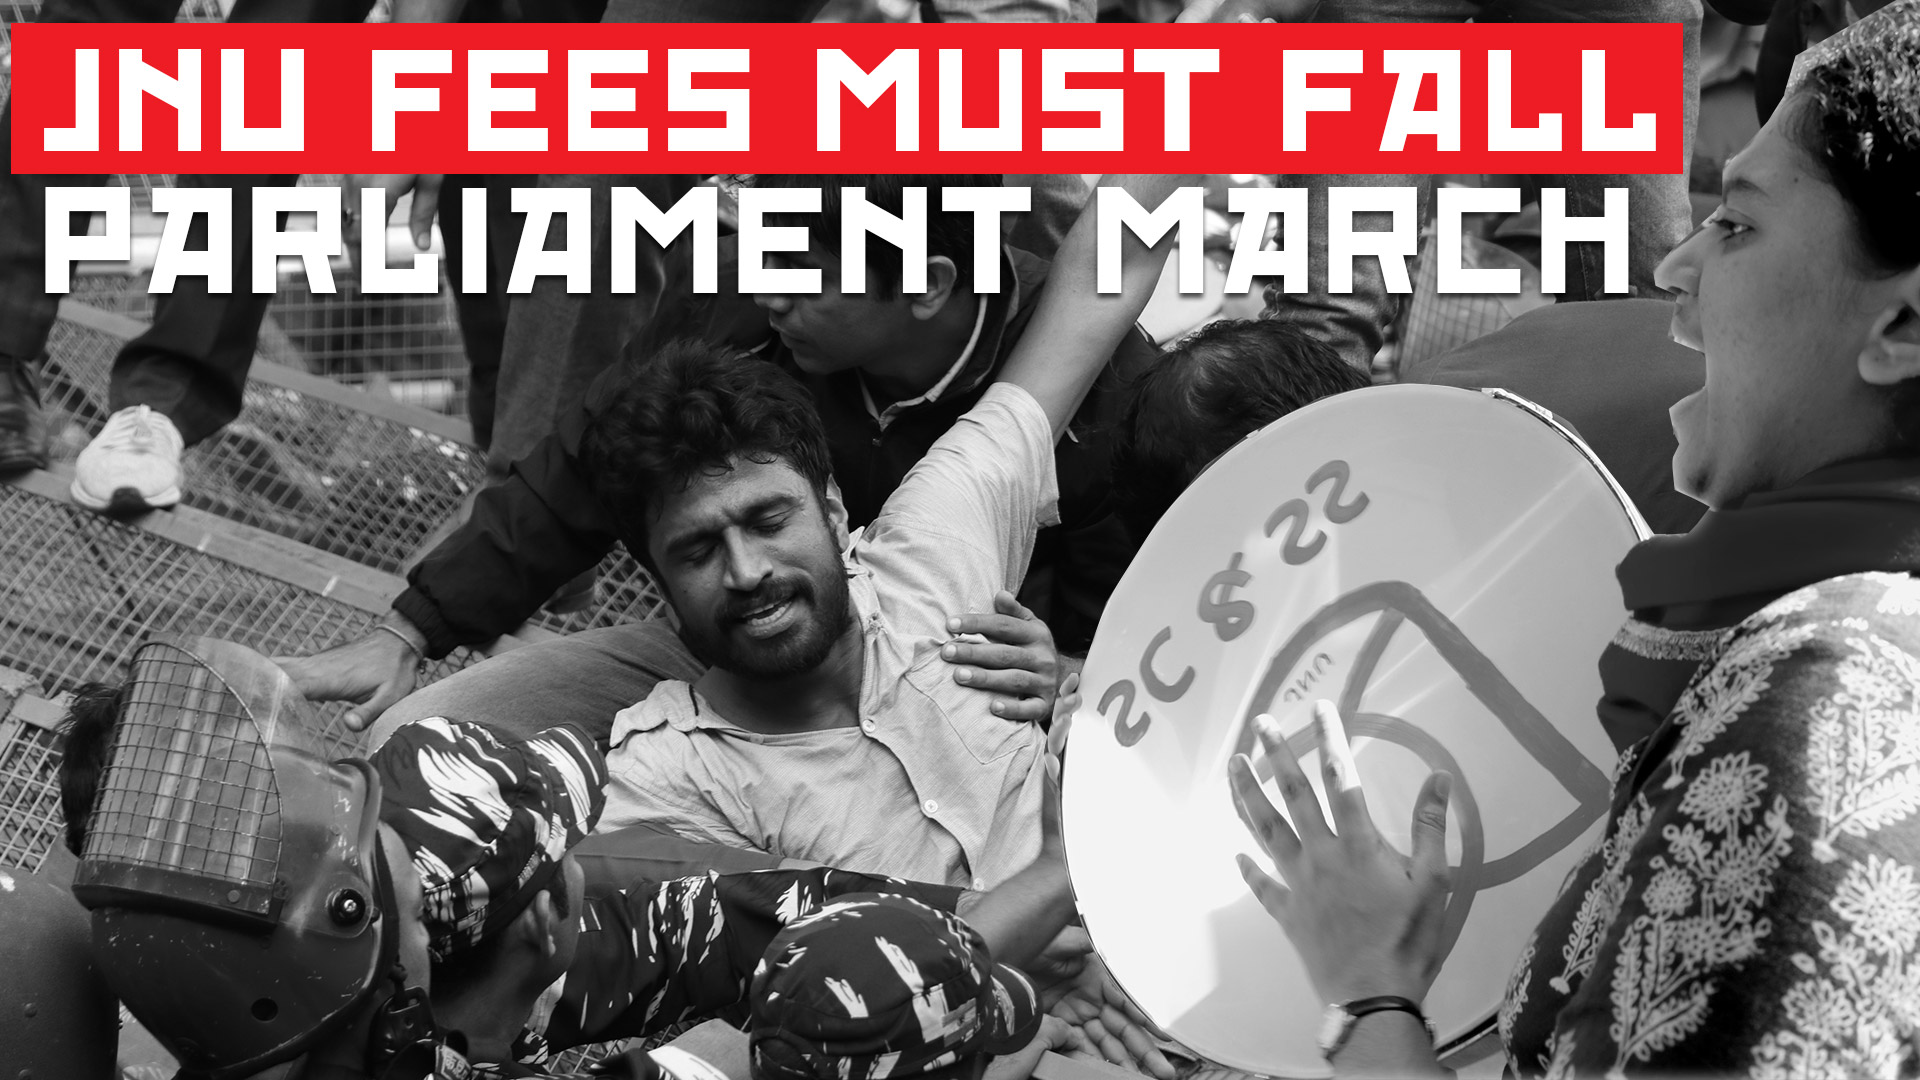 JNU FEES MUST FALL_ PARLIAMENT MARCH